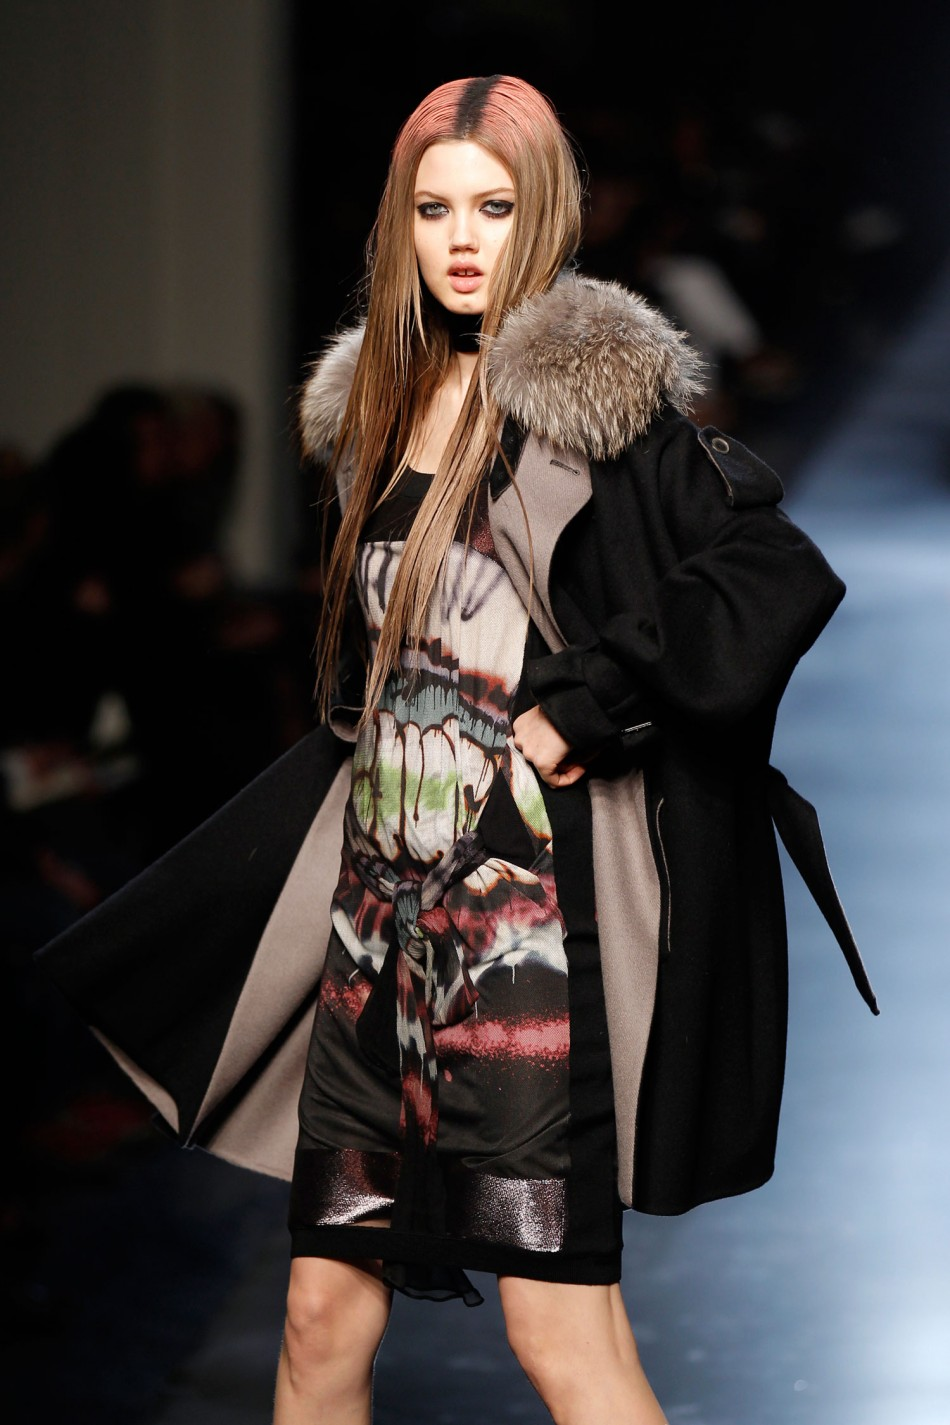 Androgynous Model Andrej Pejic Walks the Ramp for Jean Paul Gaultiers FallWinter Collection